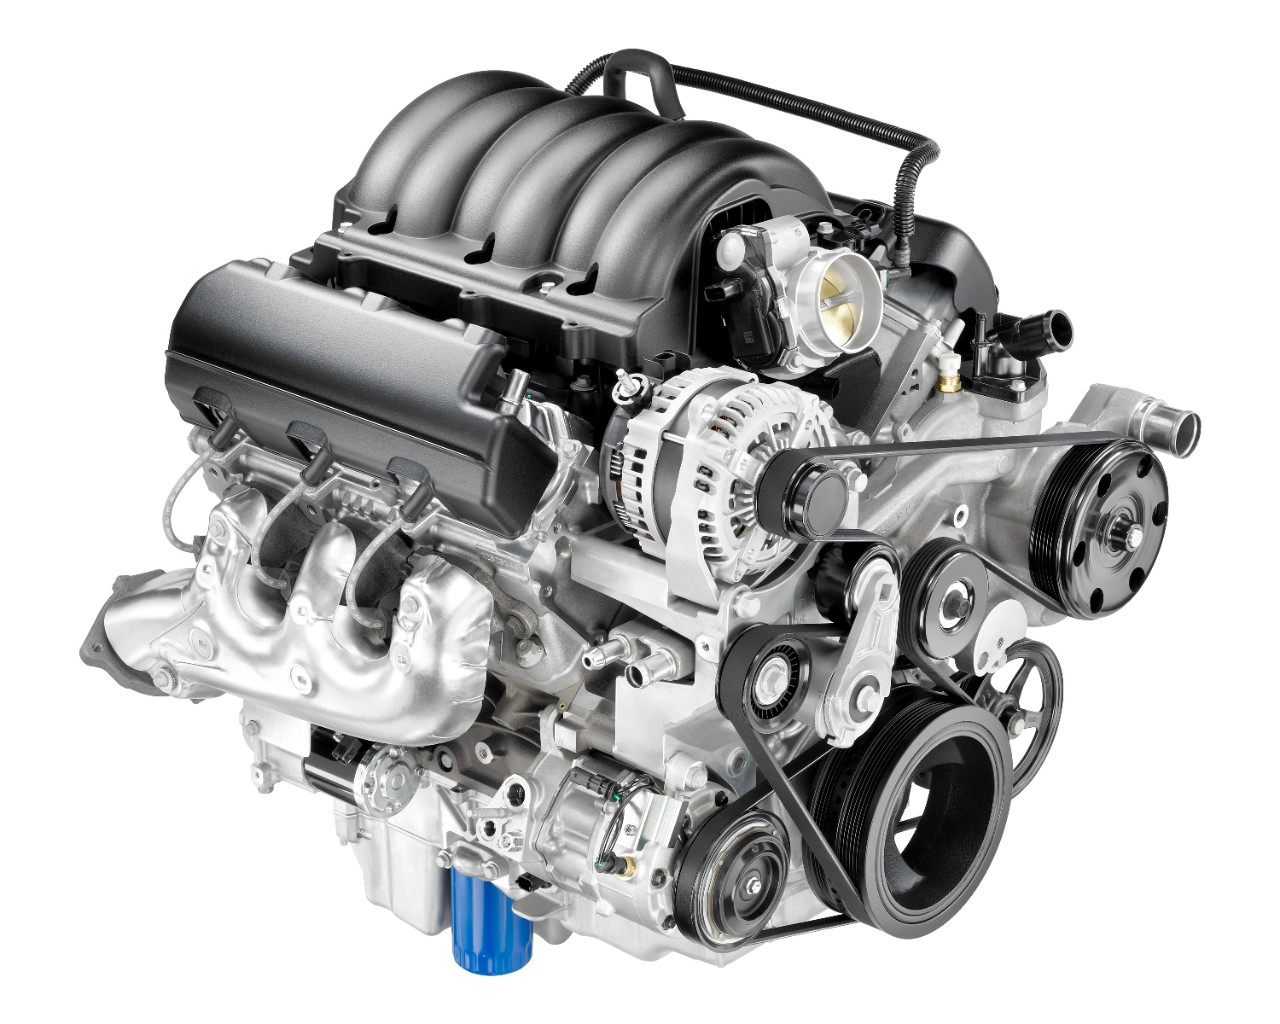 hight resolution of gm 4 3 liter v6 ecotec3 lv3 engine info power specs wiki gm